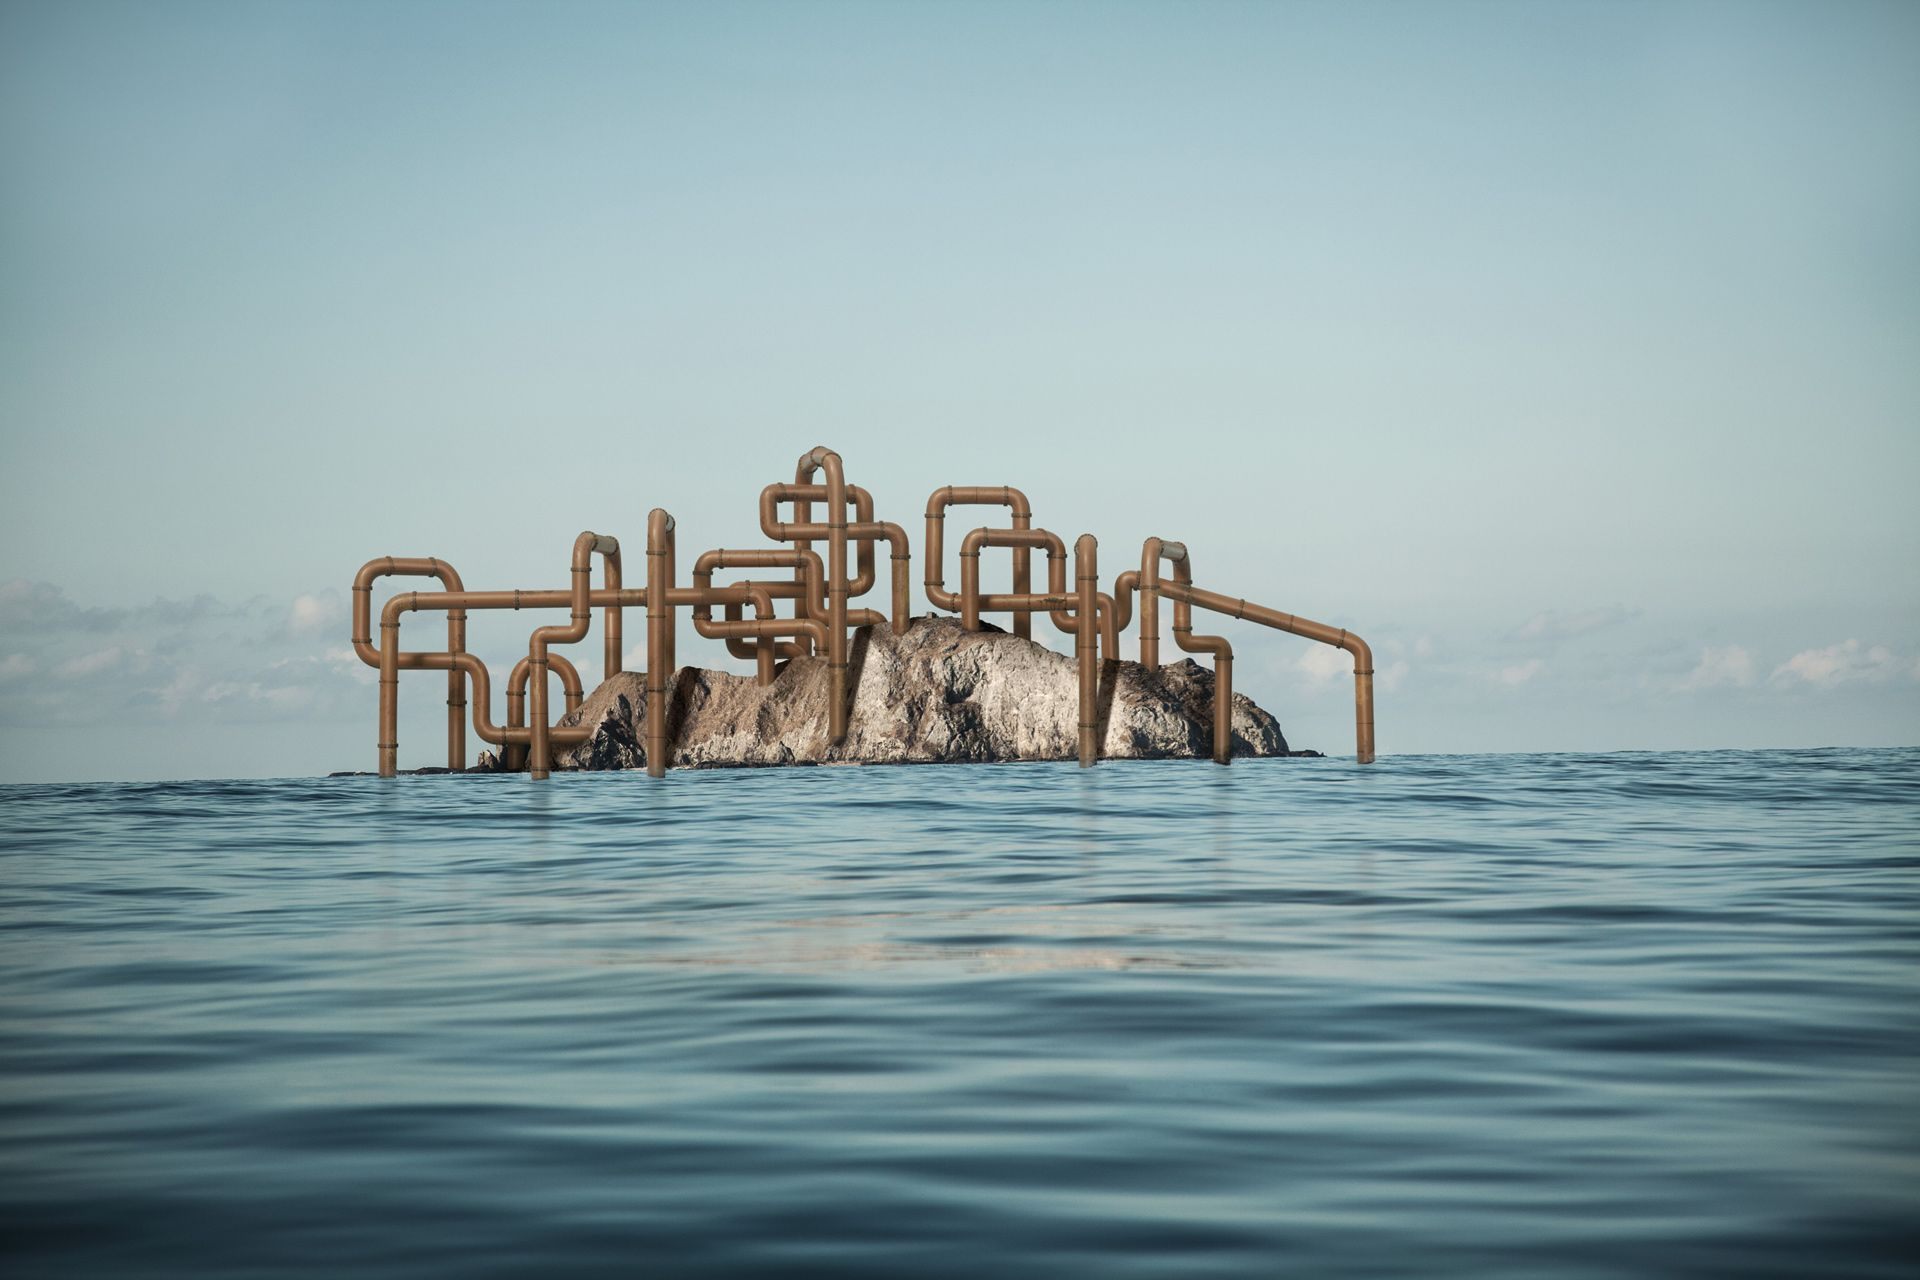 cluster of pipelines going through a rock in middle of the ocean by Simon Duhamel for Pipeline